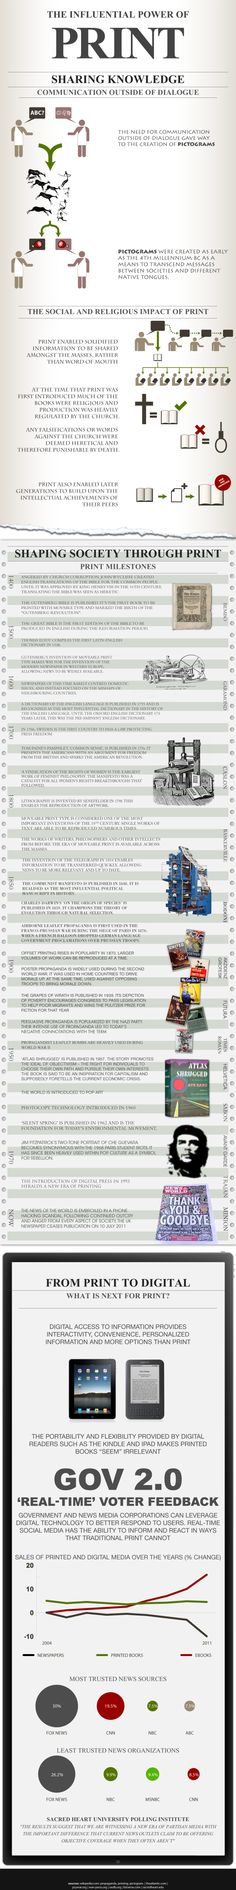 history-of-print-infographic-infographic